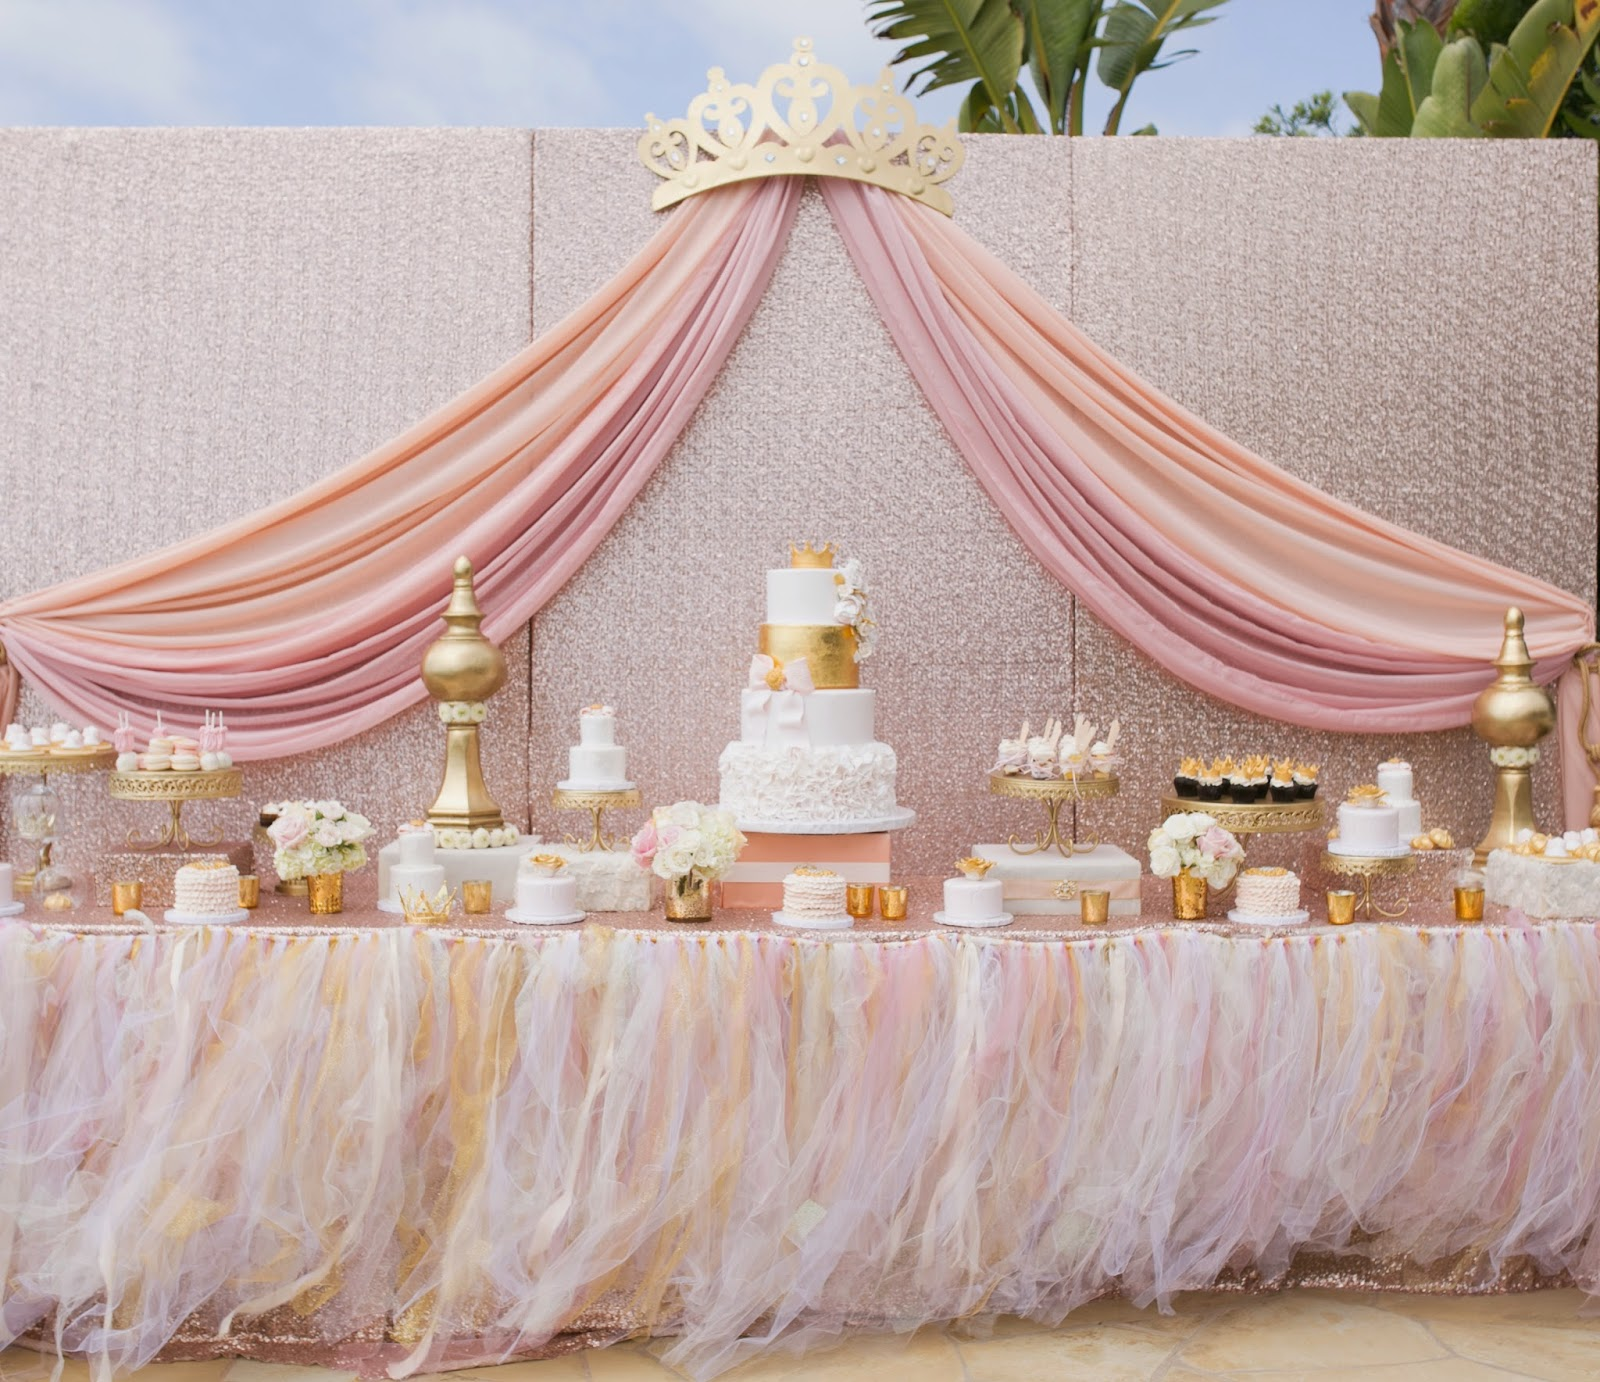 Diy Wall Draping For Weddings That Meet Interesting Decors: Shawna Yamamoto Event Design: Ballerina Princess Baby